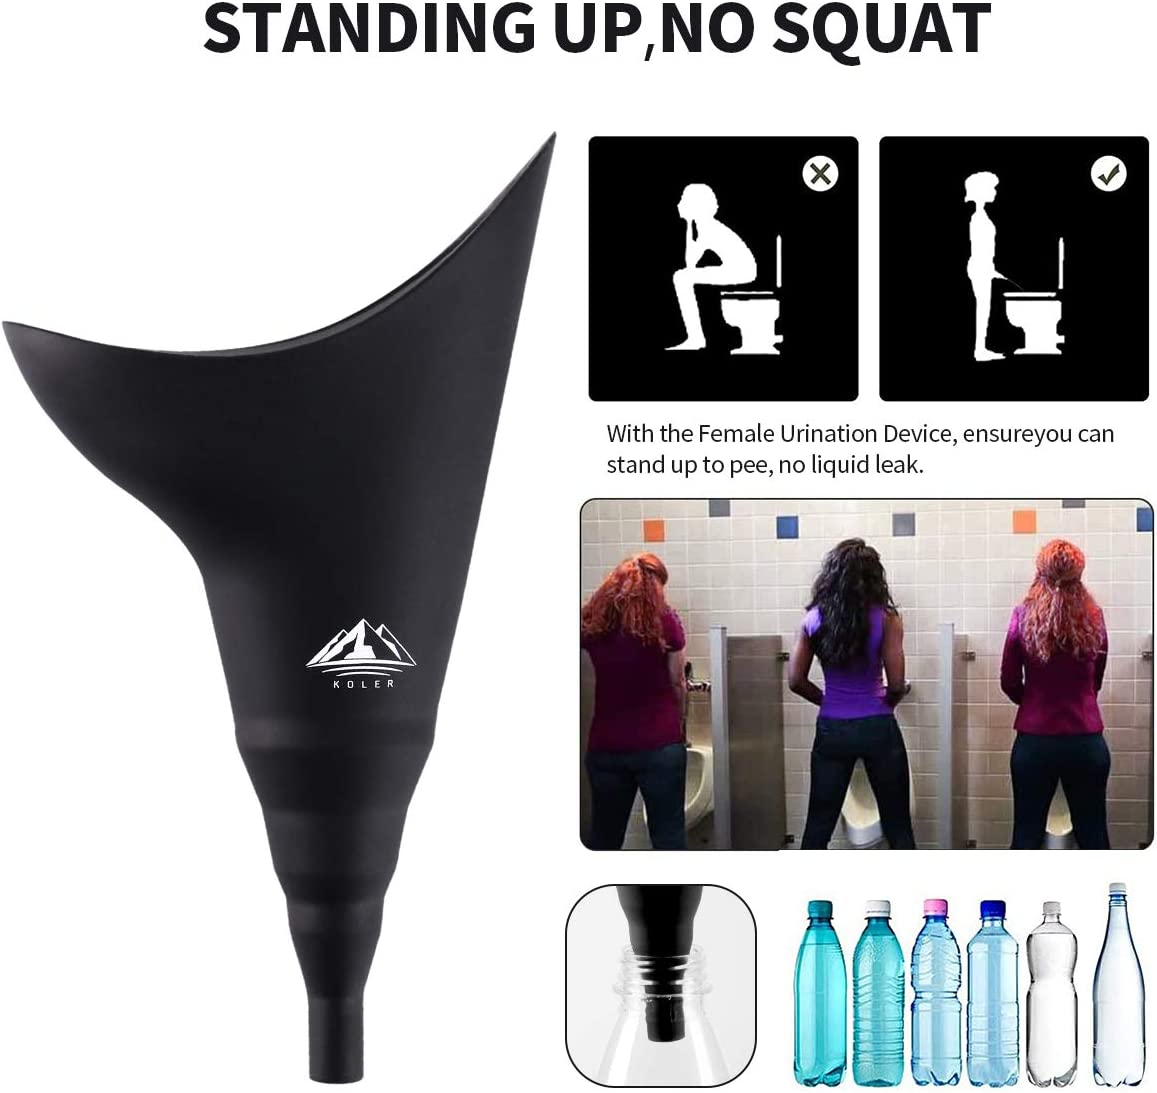 Portable Female Urination Device,Reusable Foldable Silicone Urination Funnel,Female Urinal Allows Women to Pee Standing Up,No-Leaks,Suitable for Outdoor,Traffic Jams-with Carry Bag and Urine Bag